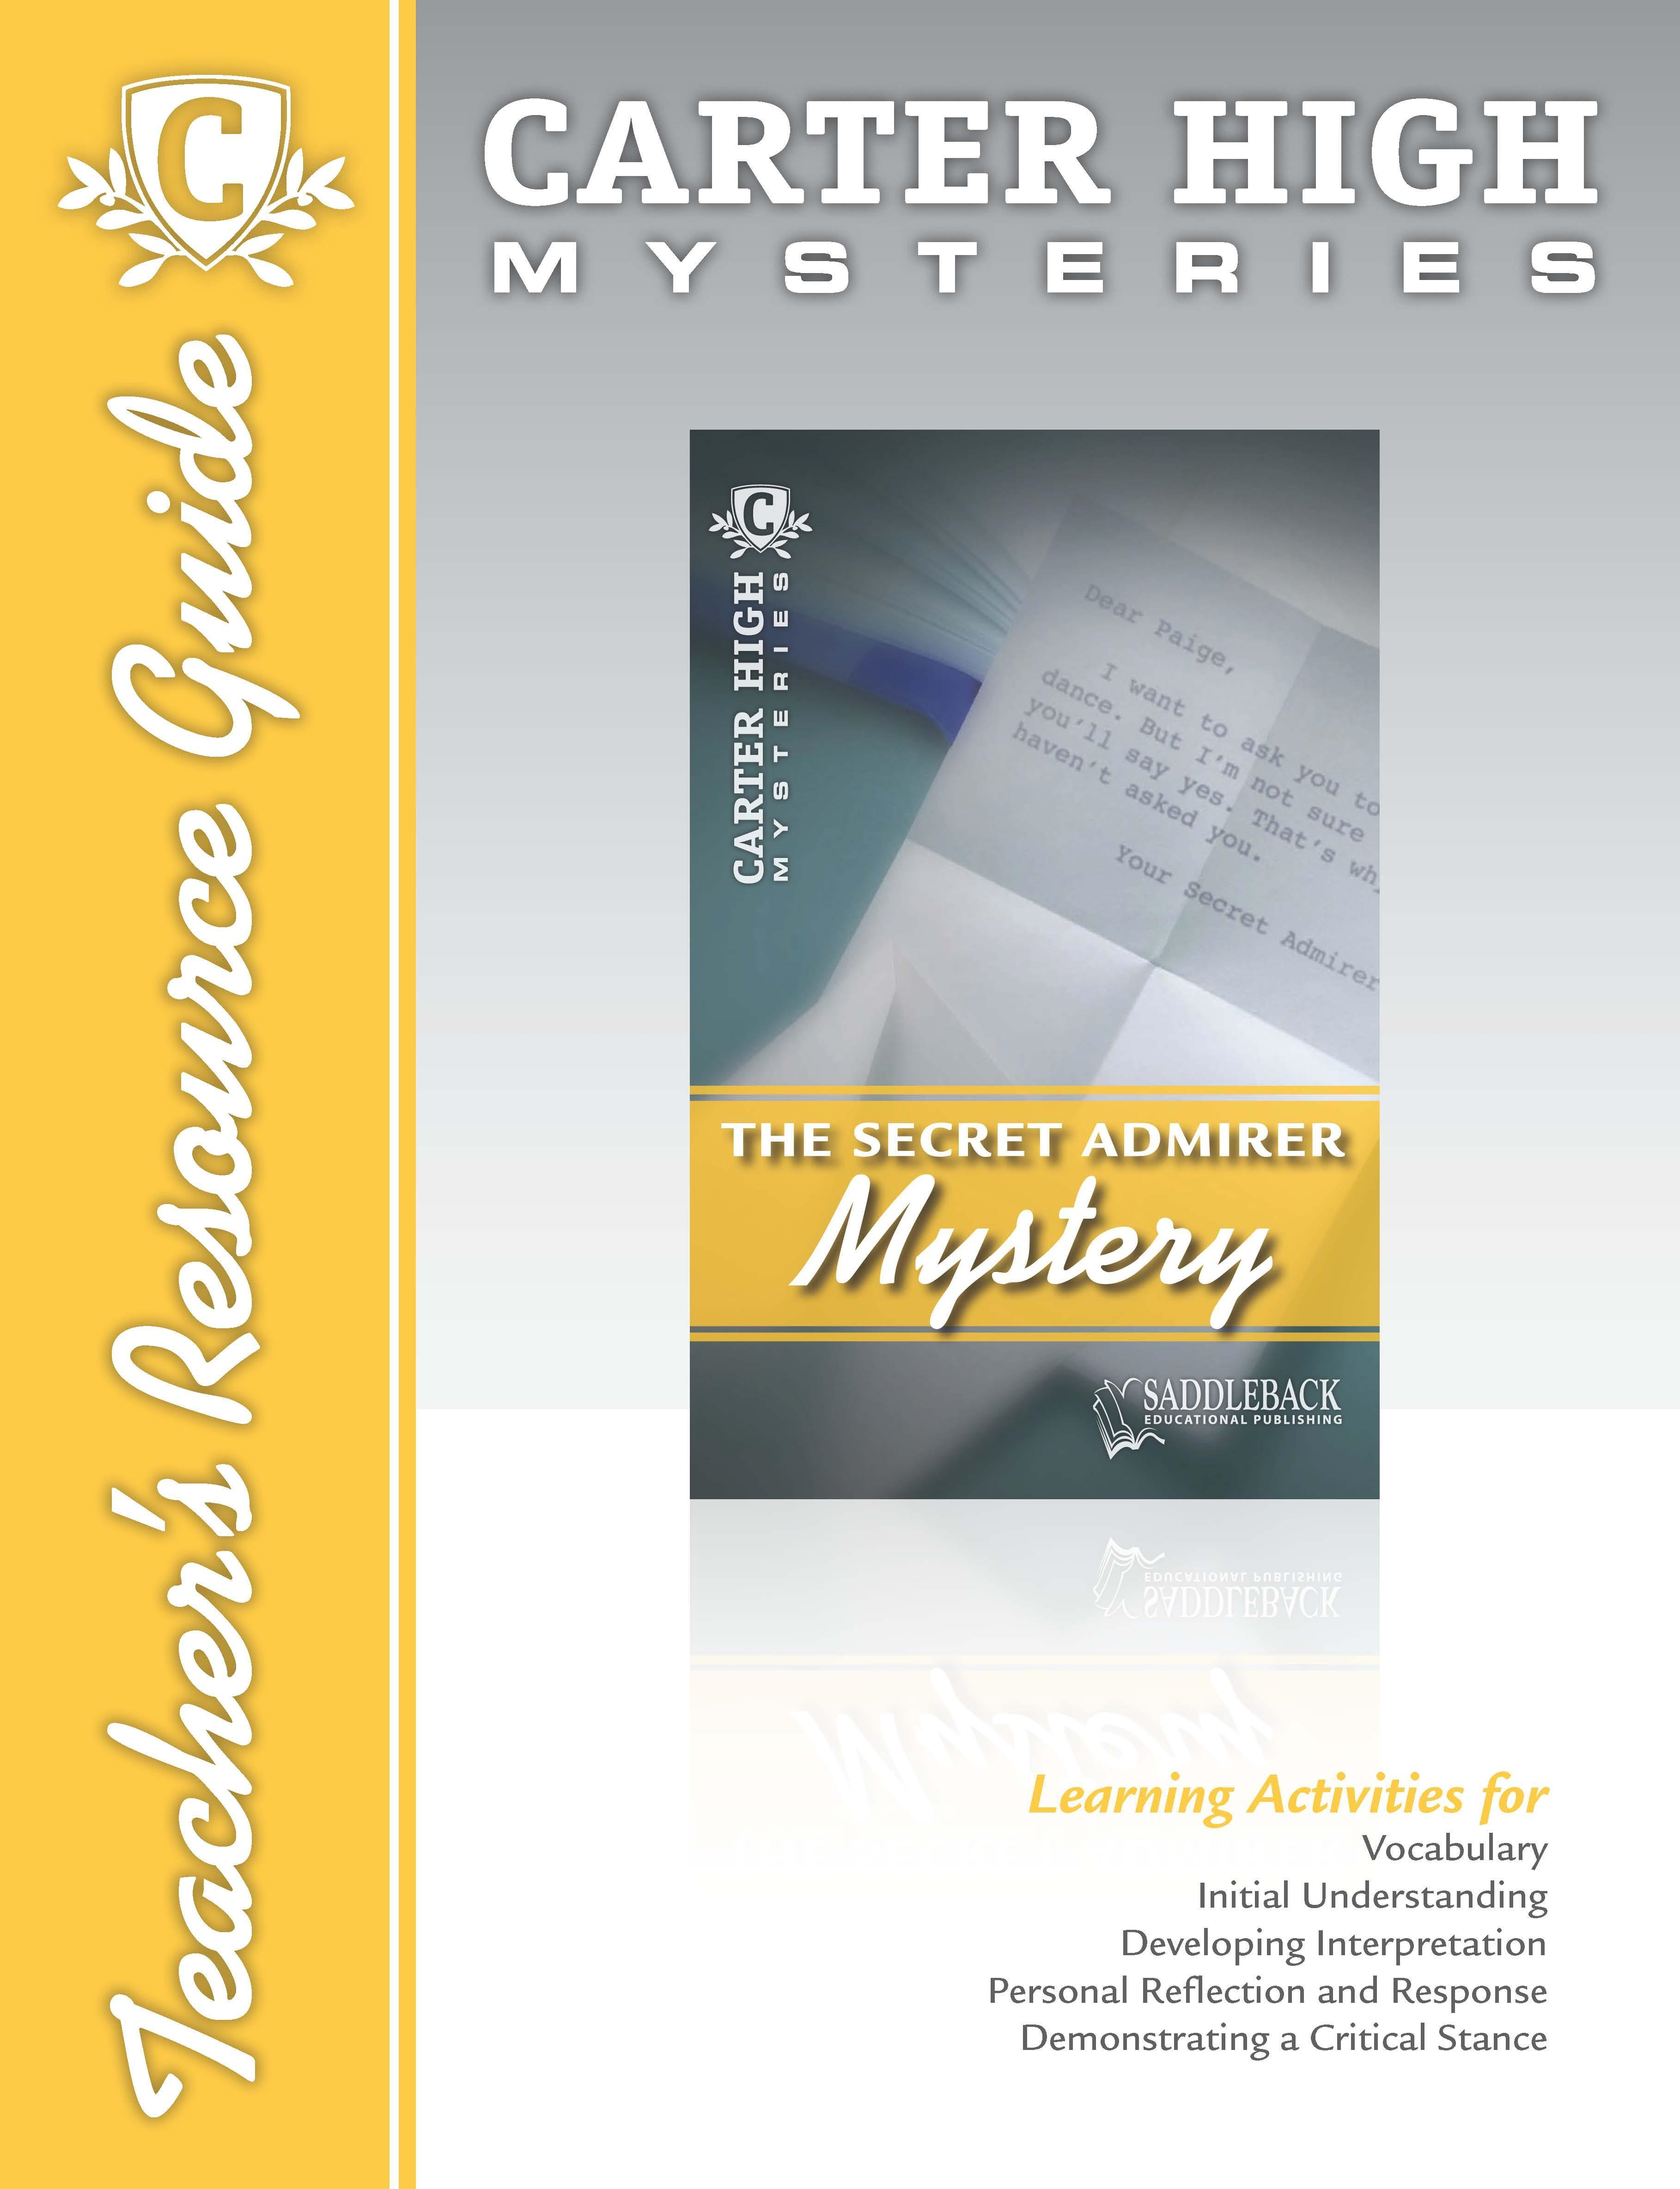 The Secret Admirer Mystery Teacher's Resource Guide